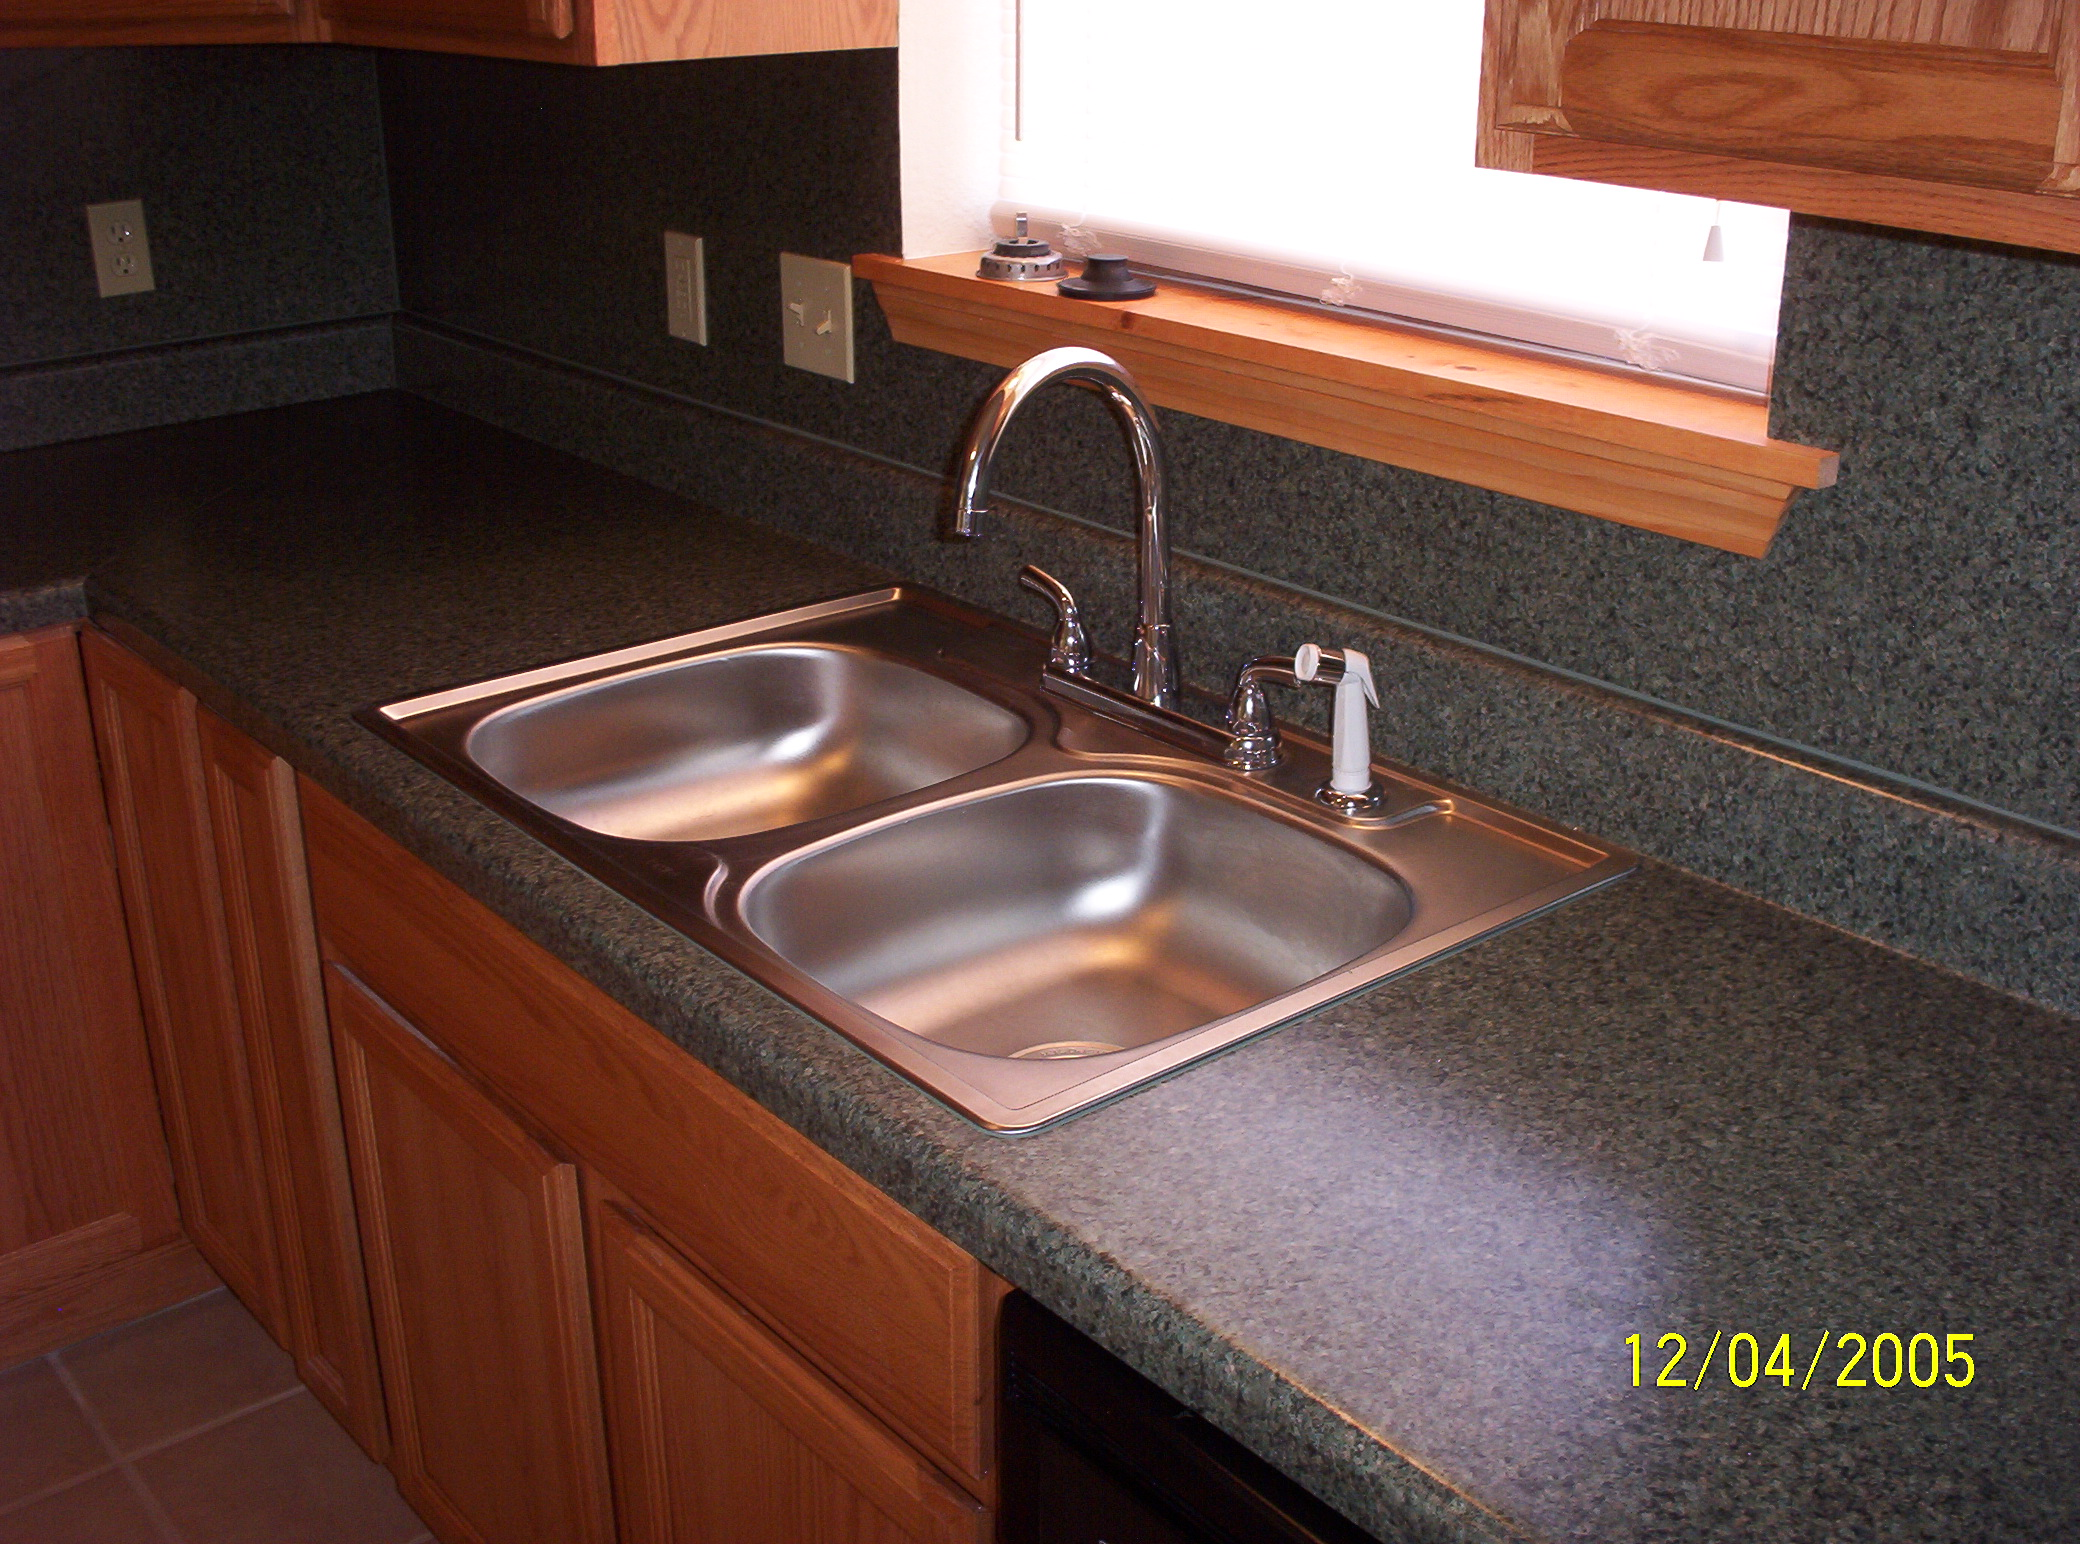 Wonderful Kitchen Cabinets and Countertops 2080 x 1544 · 1142 kB · jpeg